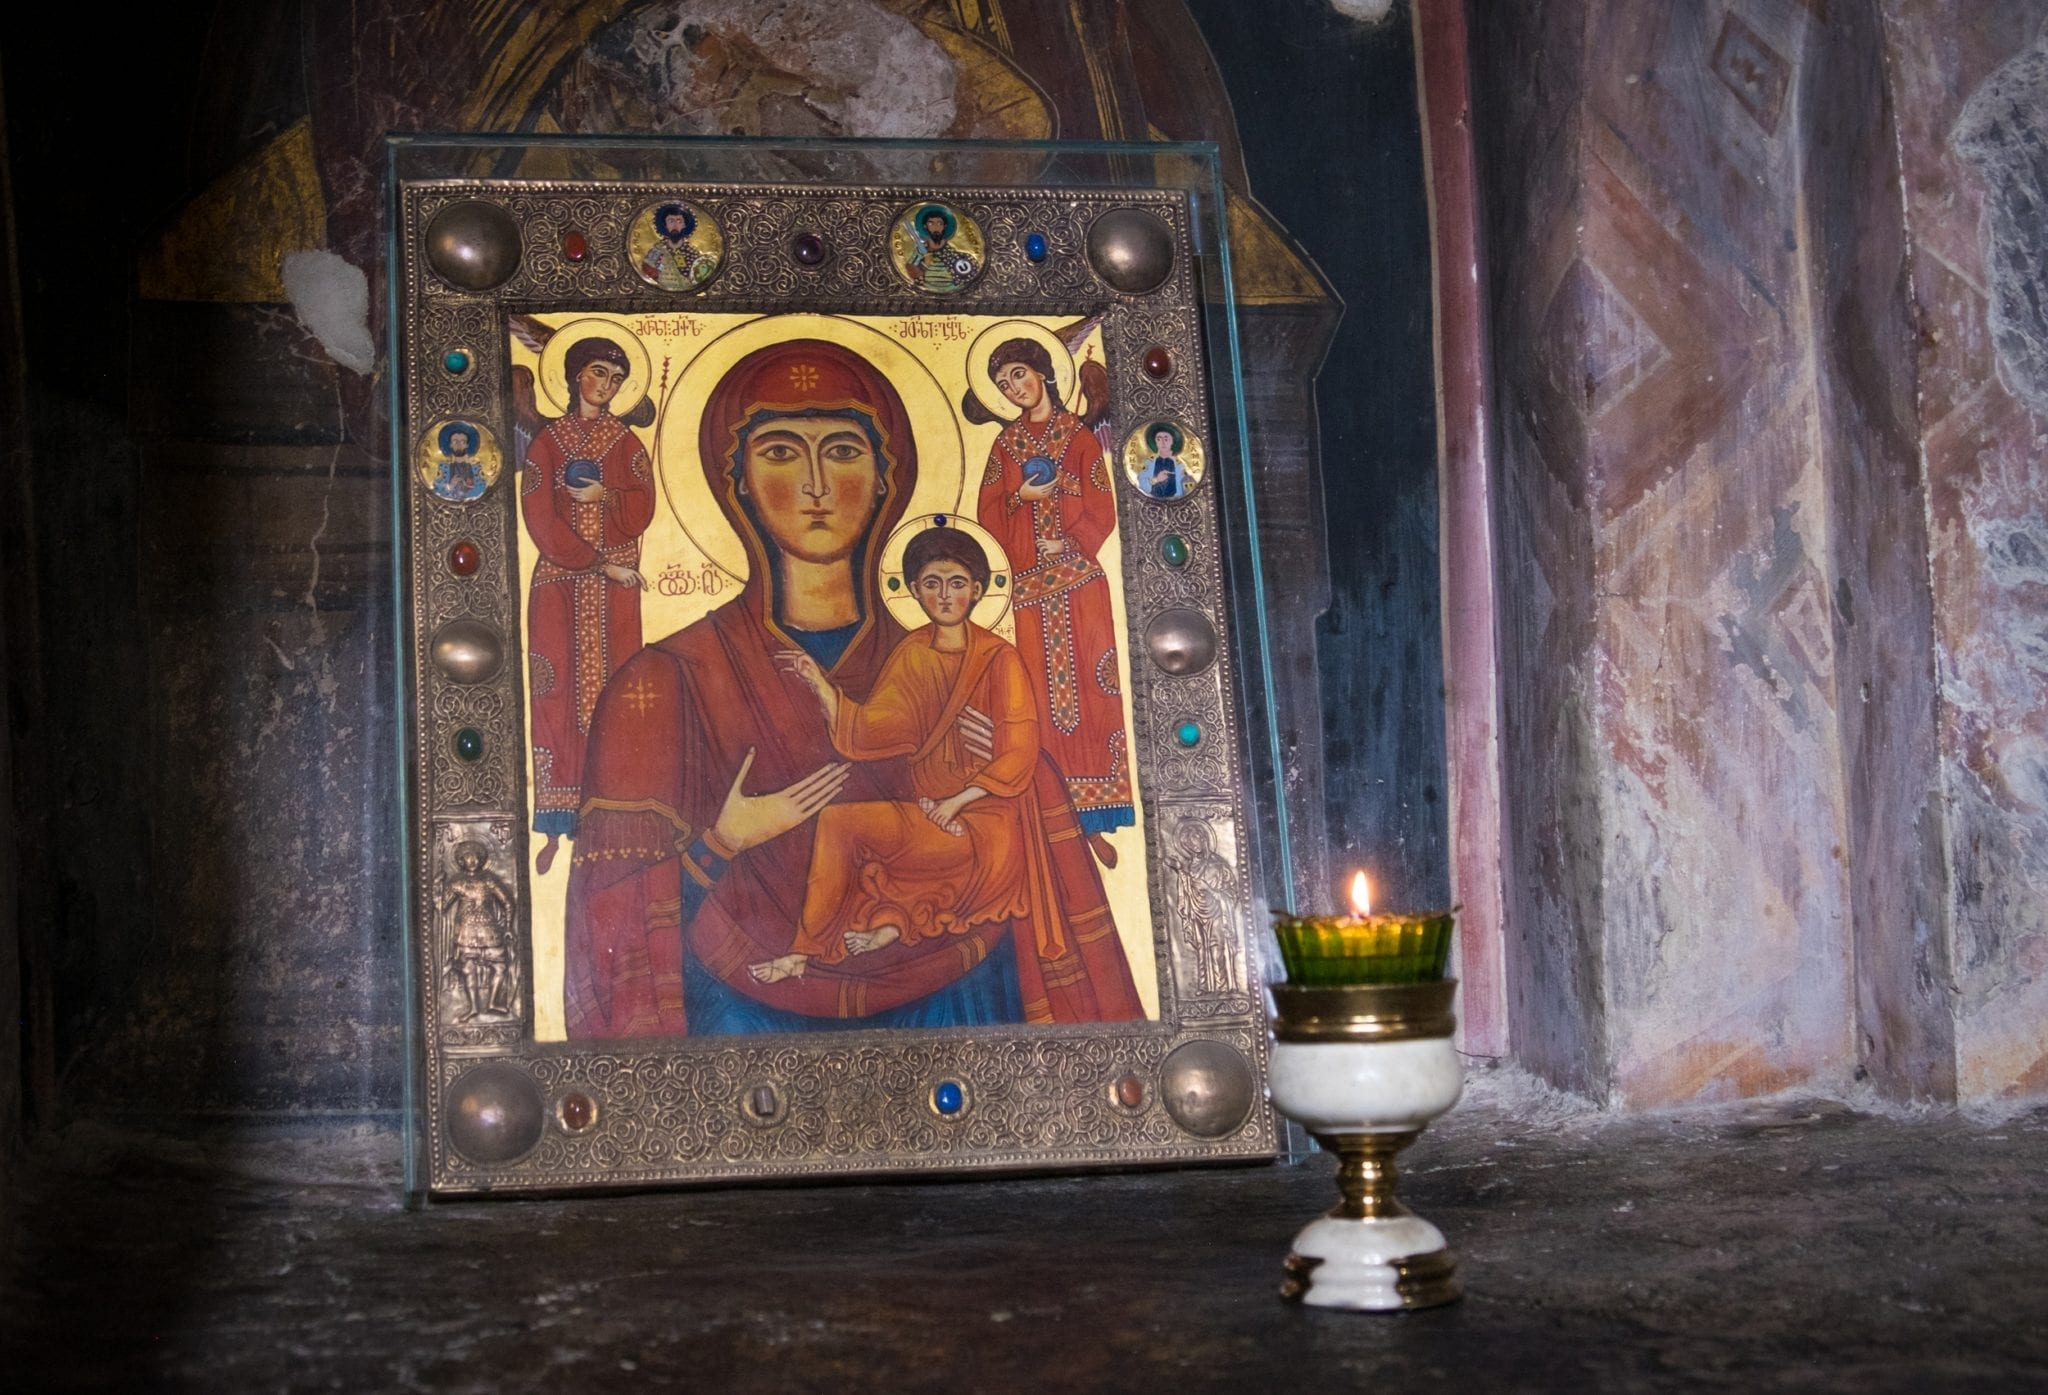 A gold portrait of the Virgin Mary and Jesus leaning against a wall in a Georgian church, a chalice sitting in front.